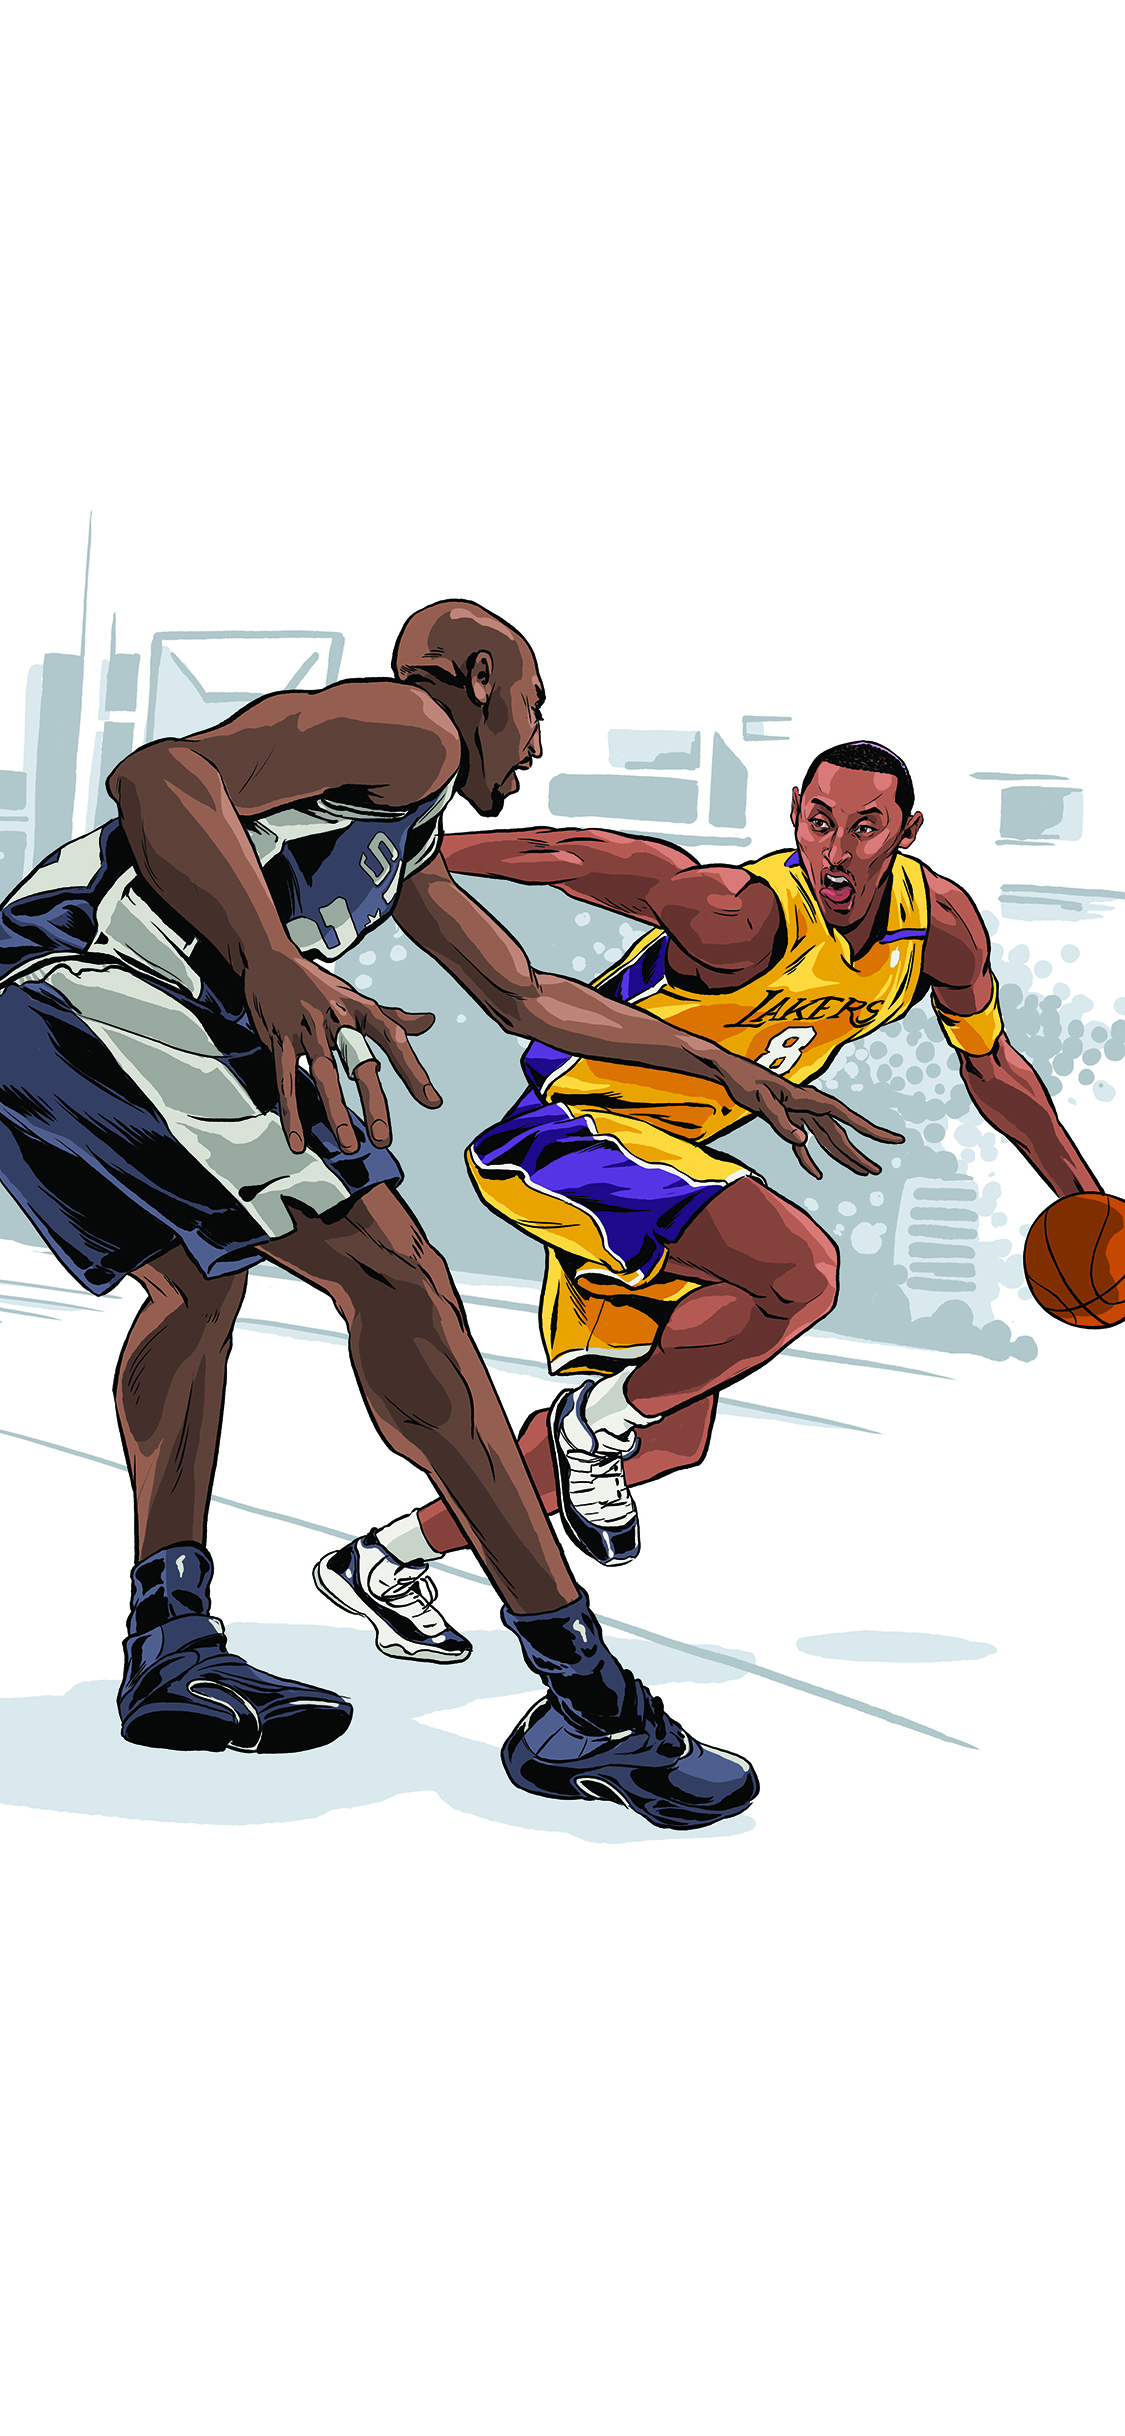 Aq45 Kobe Bryant Ankle Breaker Sports Nba Art Wallpaper